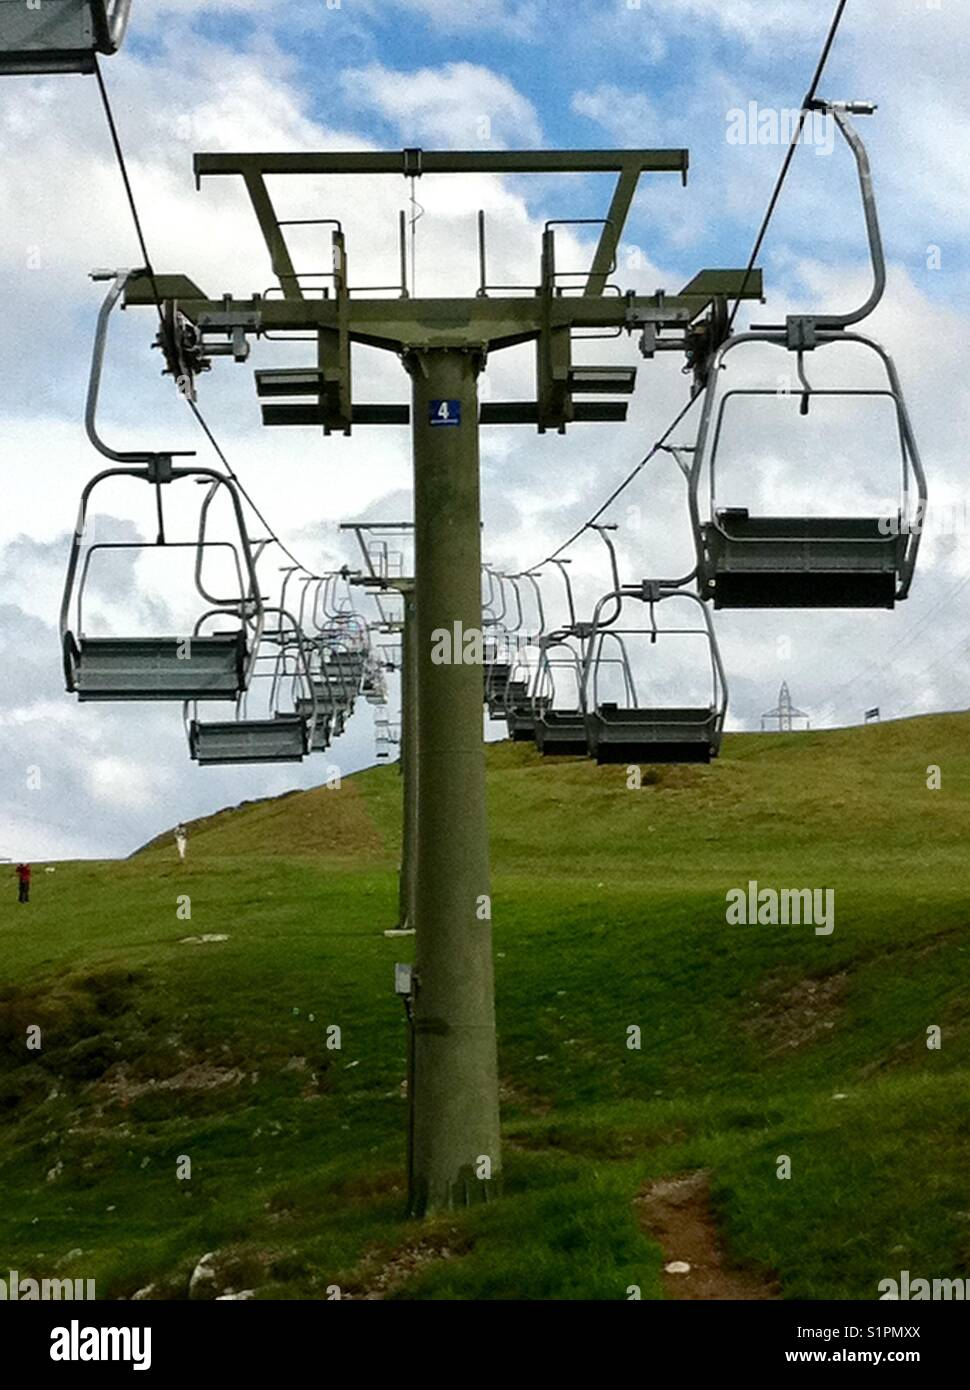 Chairlifts in Andorra Stock Photo